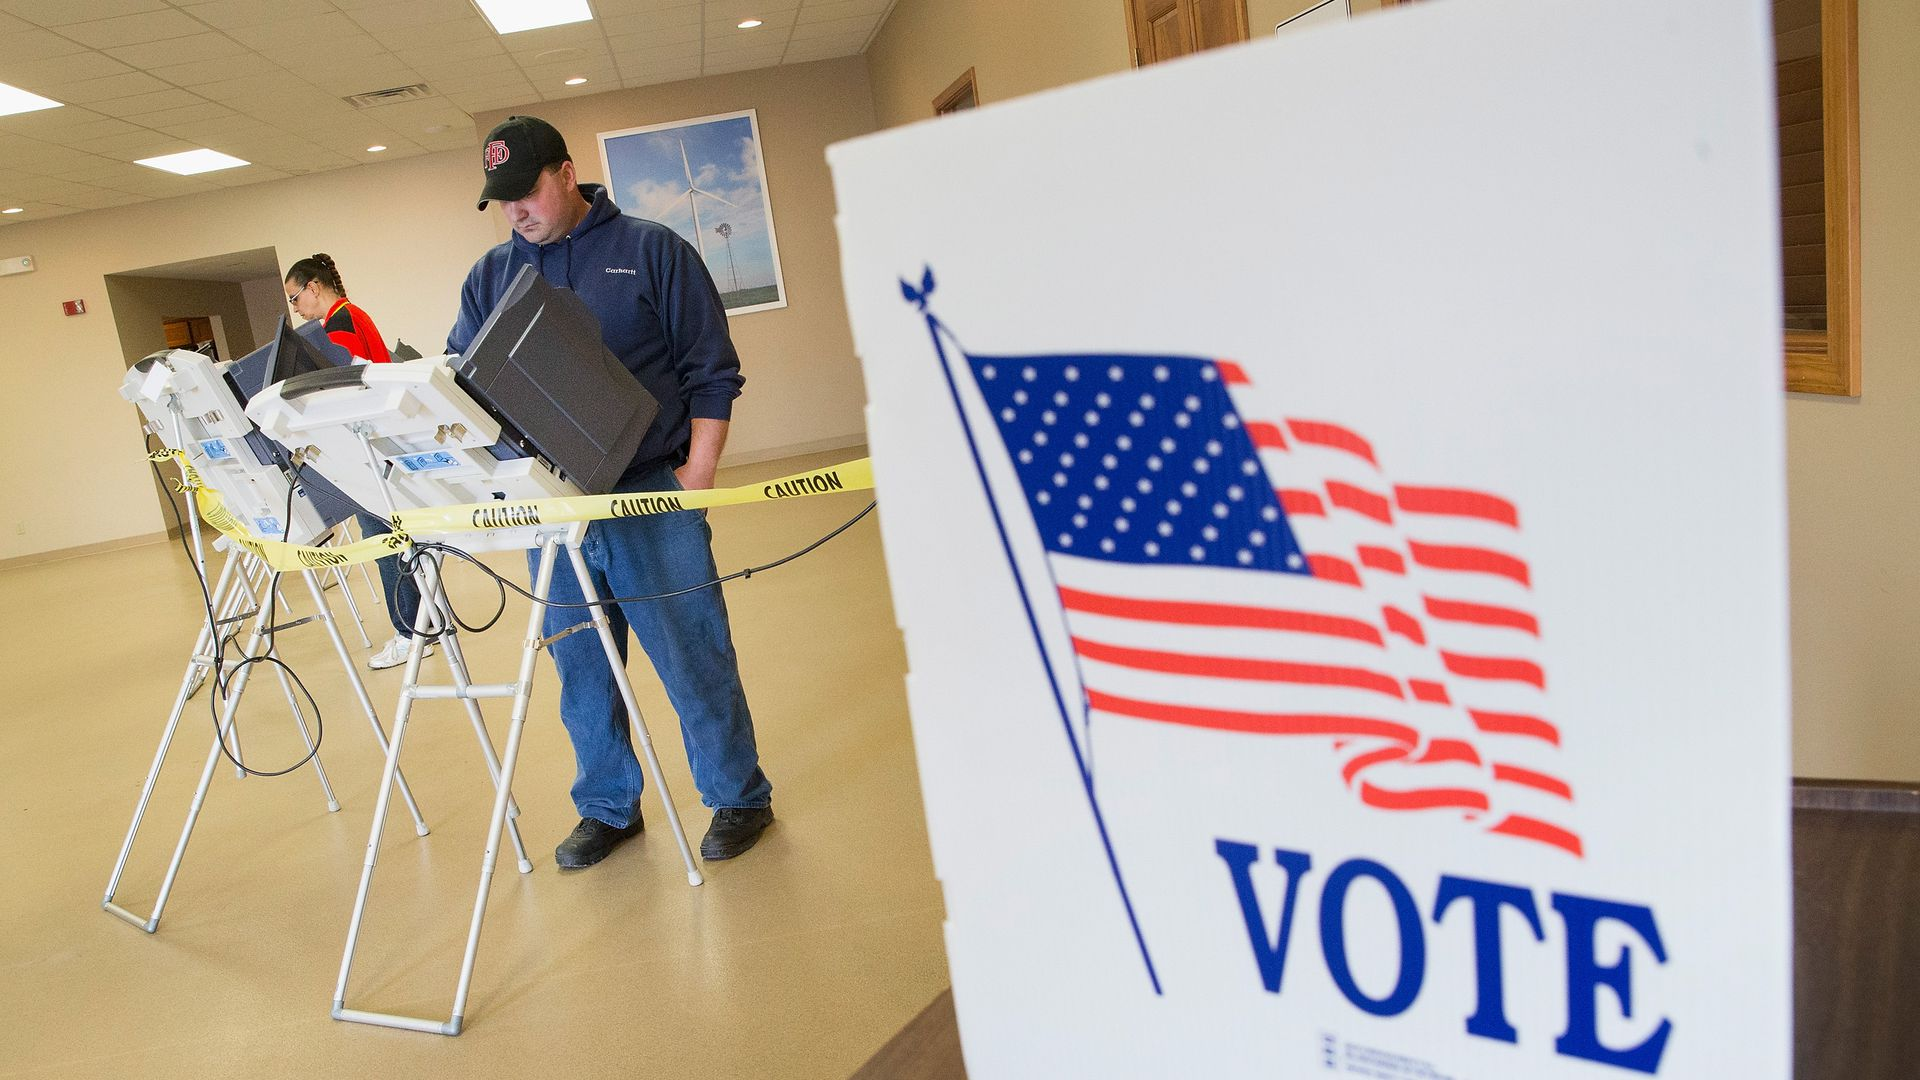 Voters cast their ballots at a polling place in Fowler, Indiana.